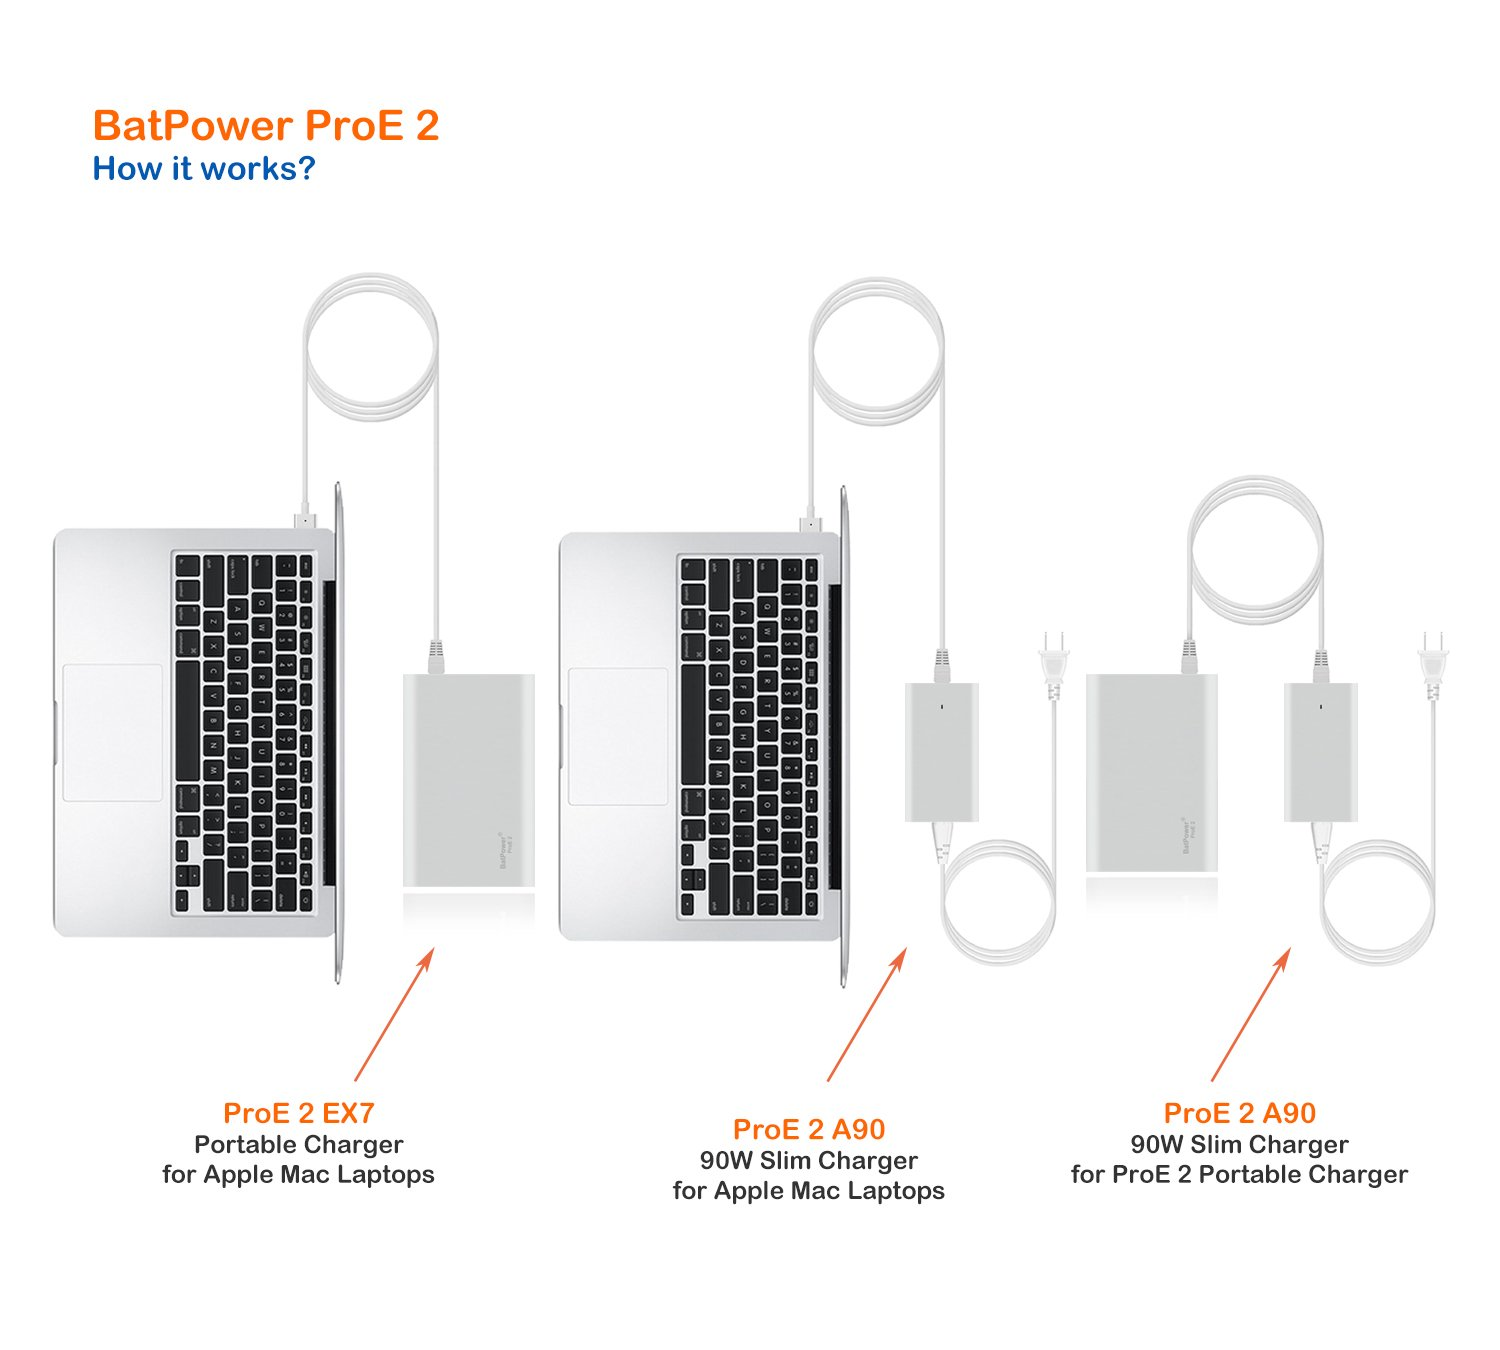 BatPower ProE 2 EX7 Portable Charger External Battery Power Bank for Apple Macbook Pro Macbook Air Mac Retina 2006-2015 Laptop, QC 3.0 USB Ports Fast Charging for tablet and smartphone -98Wh by BatPower (Image #6)